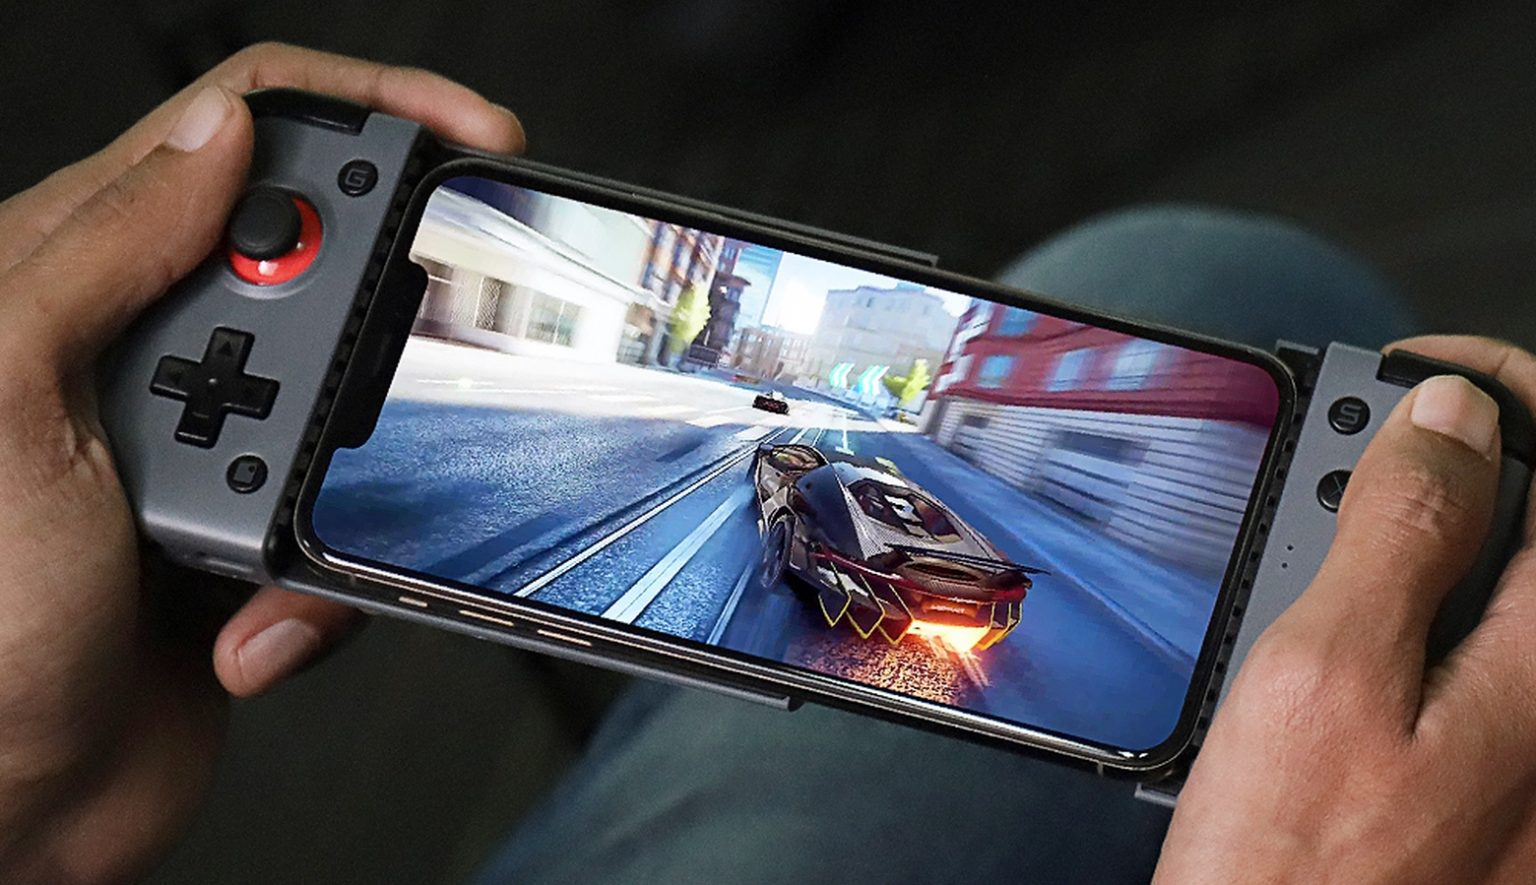 GameSir X2 Bluetooth Mobile Gaming Controller works with iPhone and Android